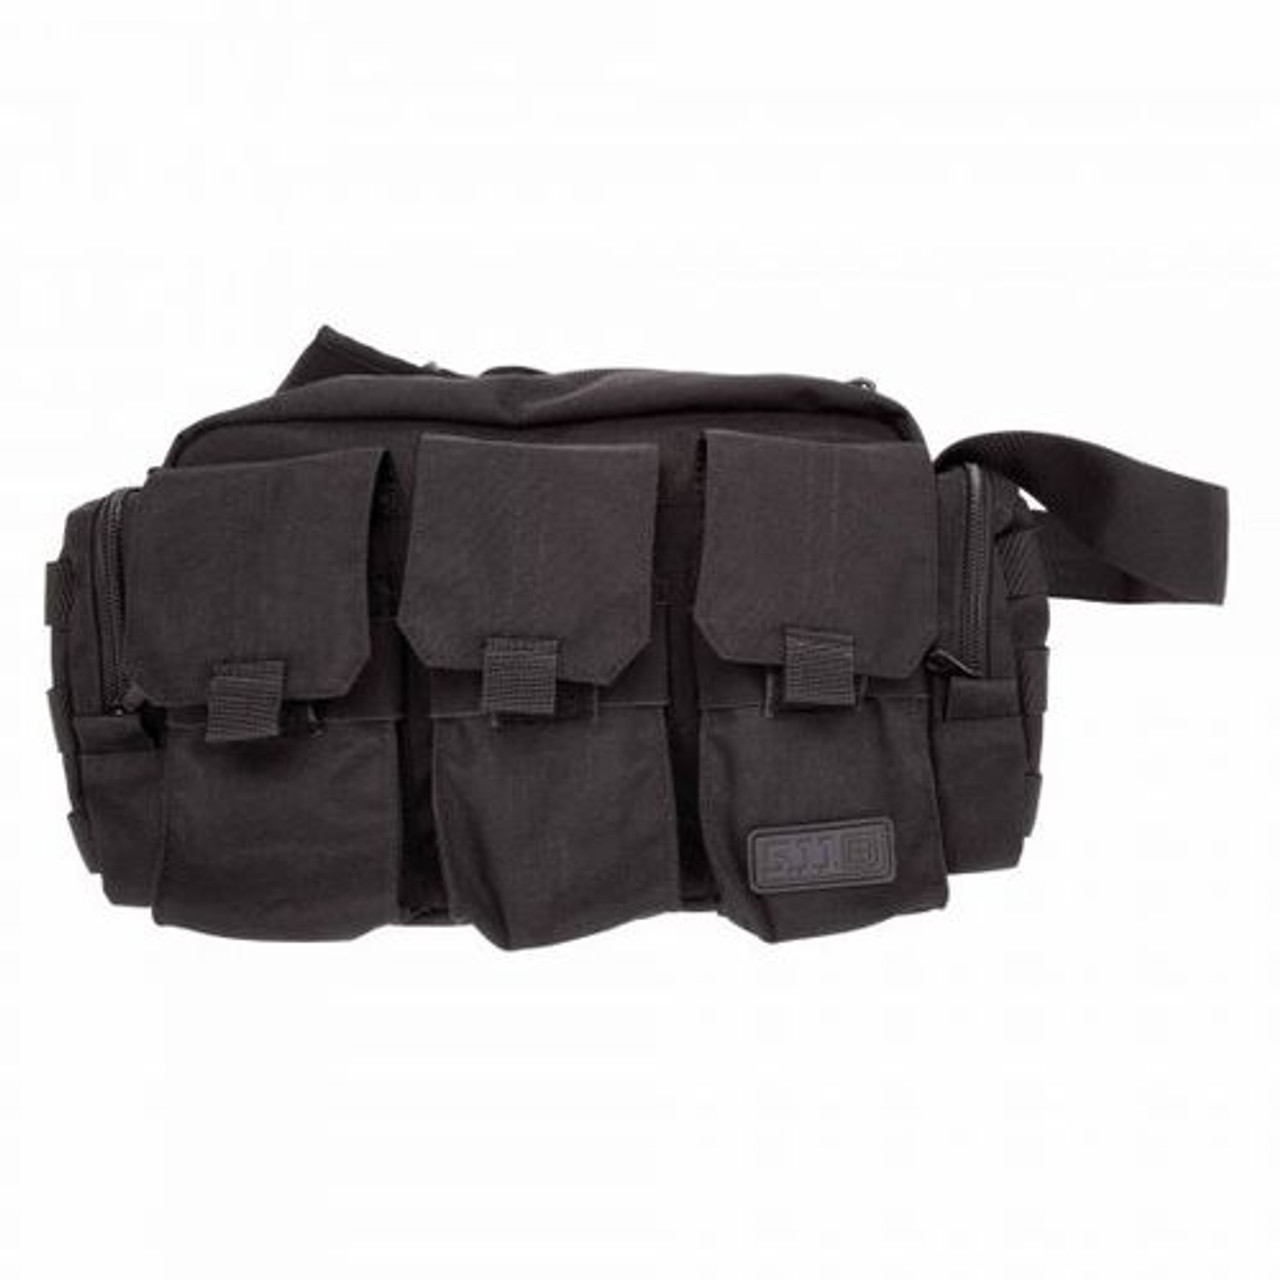 5.11 Tactical BAIL OUT AMMO BAG, Sling Pack, 1050D nylon construction, Adjustable strap with quick-release drop, Internal hook and loop closure for pull-out pouches, 56026